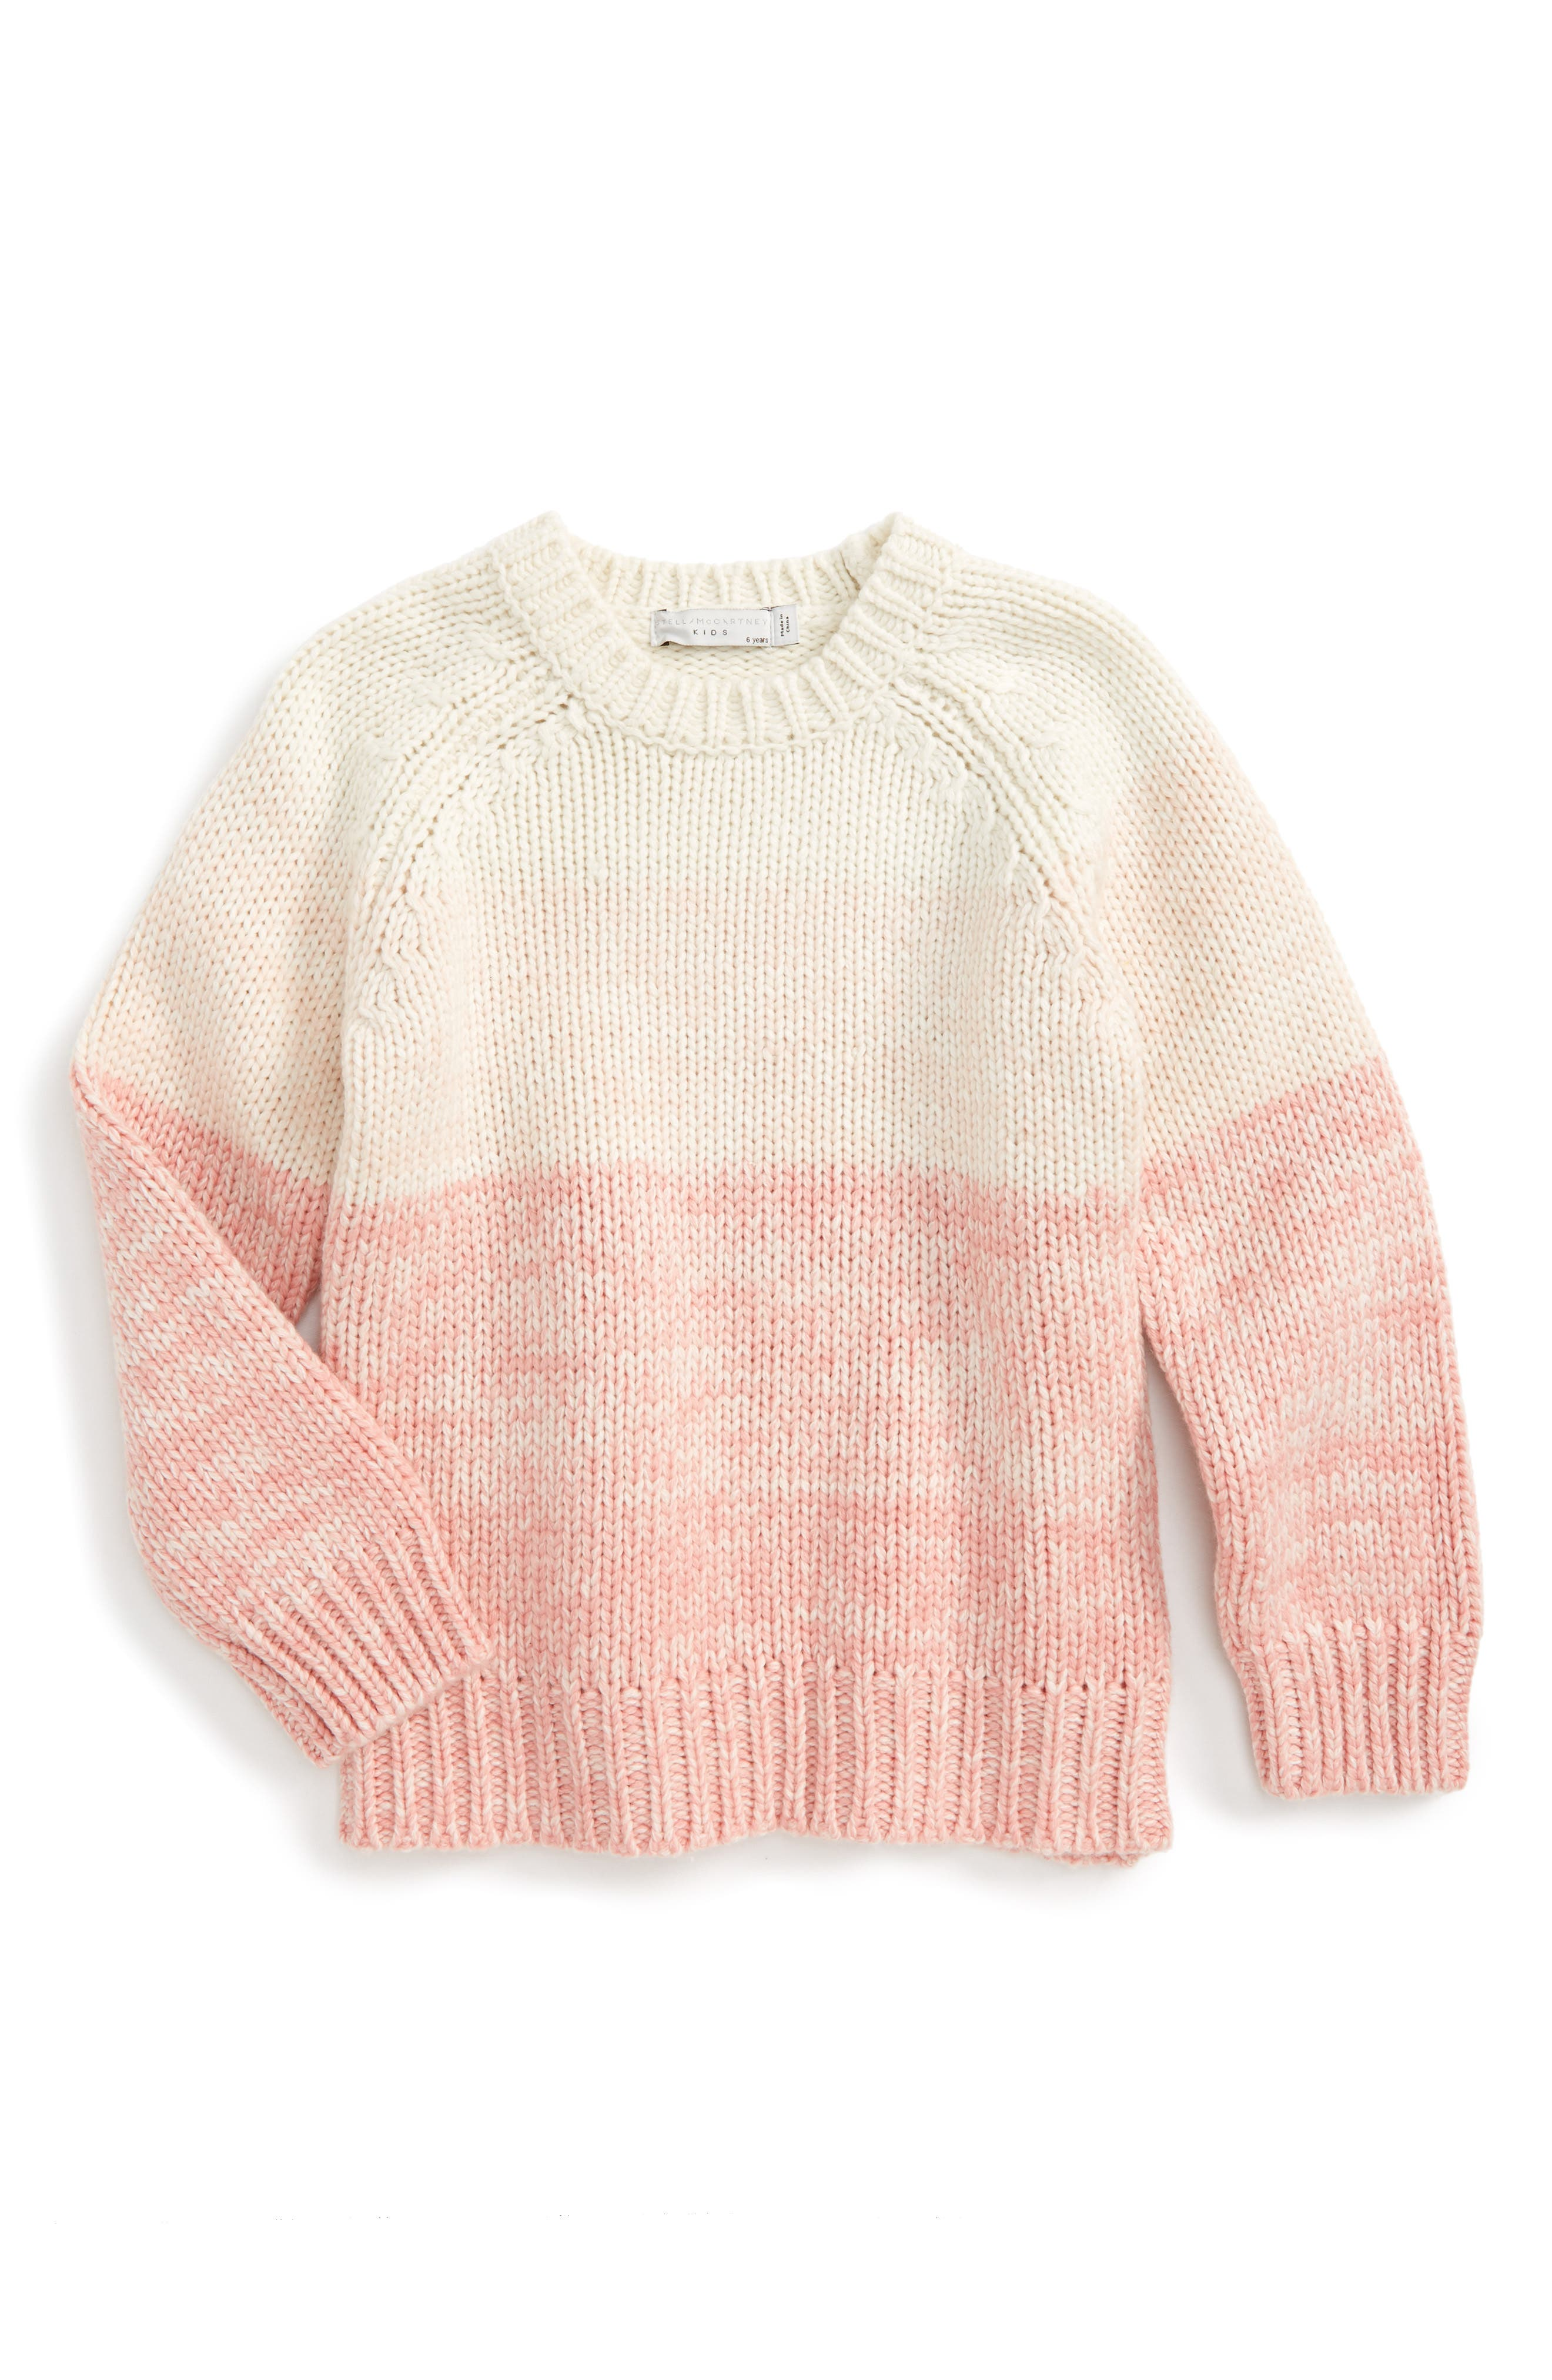 Kids Freddie Chunky Knit Sweater,                             Main thumbnail 1, color,                             Pink